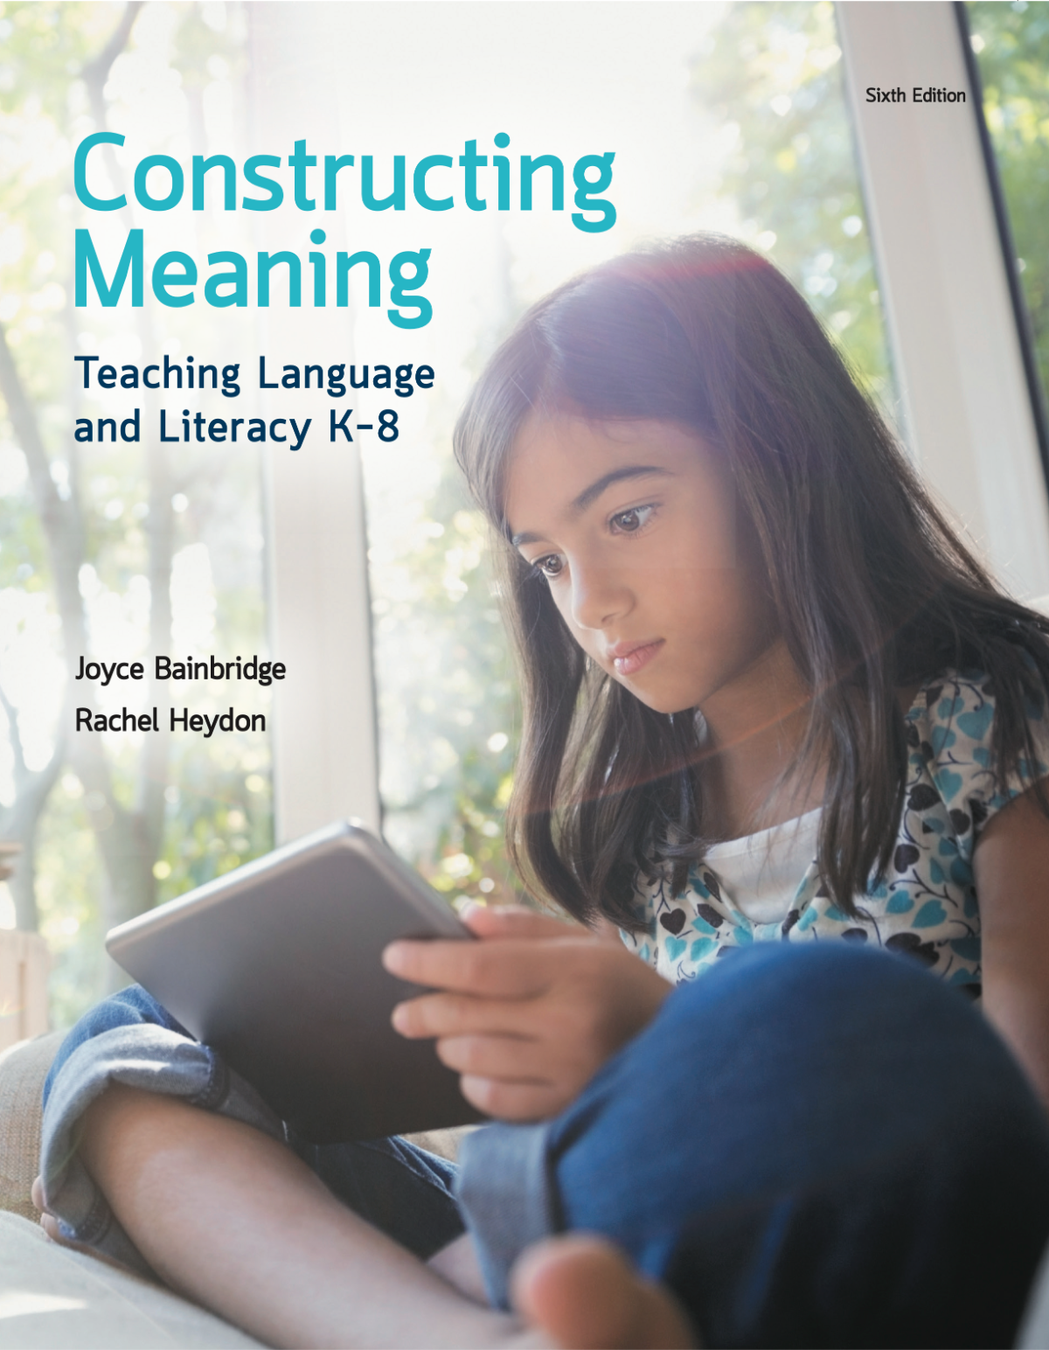 Constructing Meaning: Teaching Language and Literacy K-8, 6th Edition